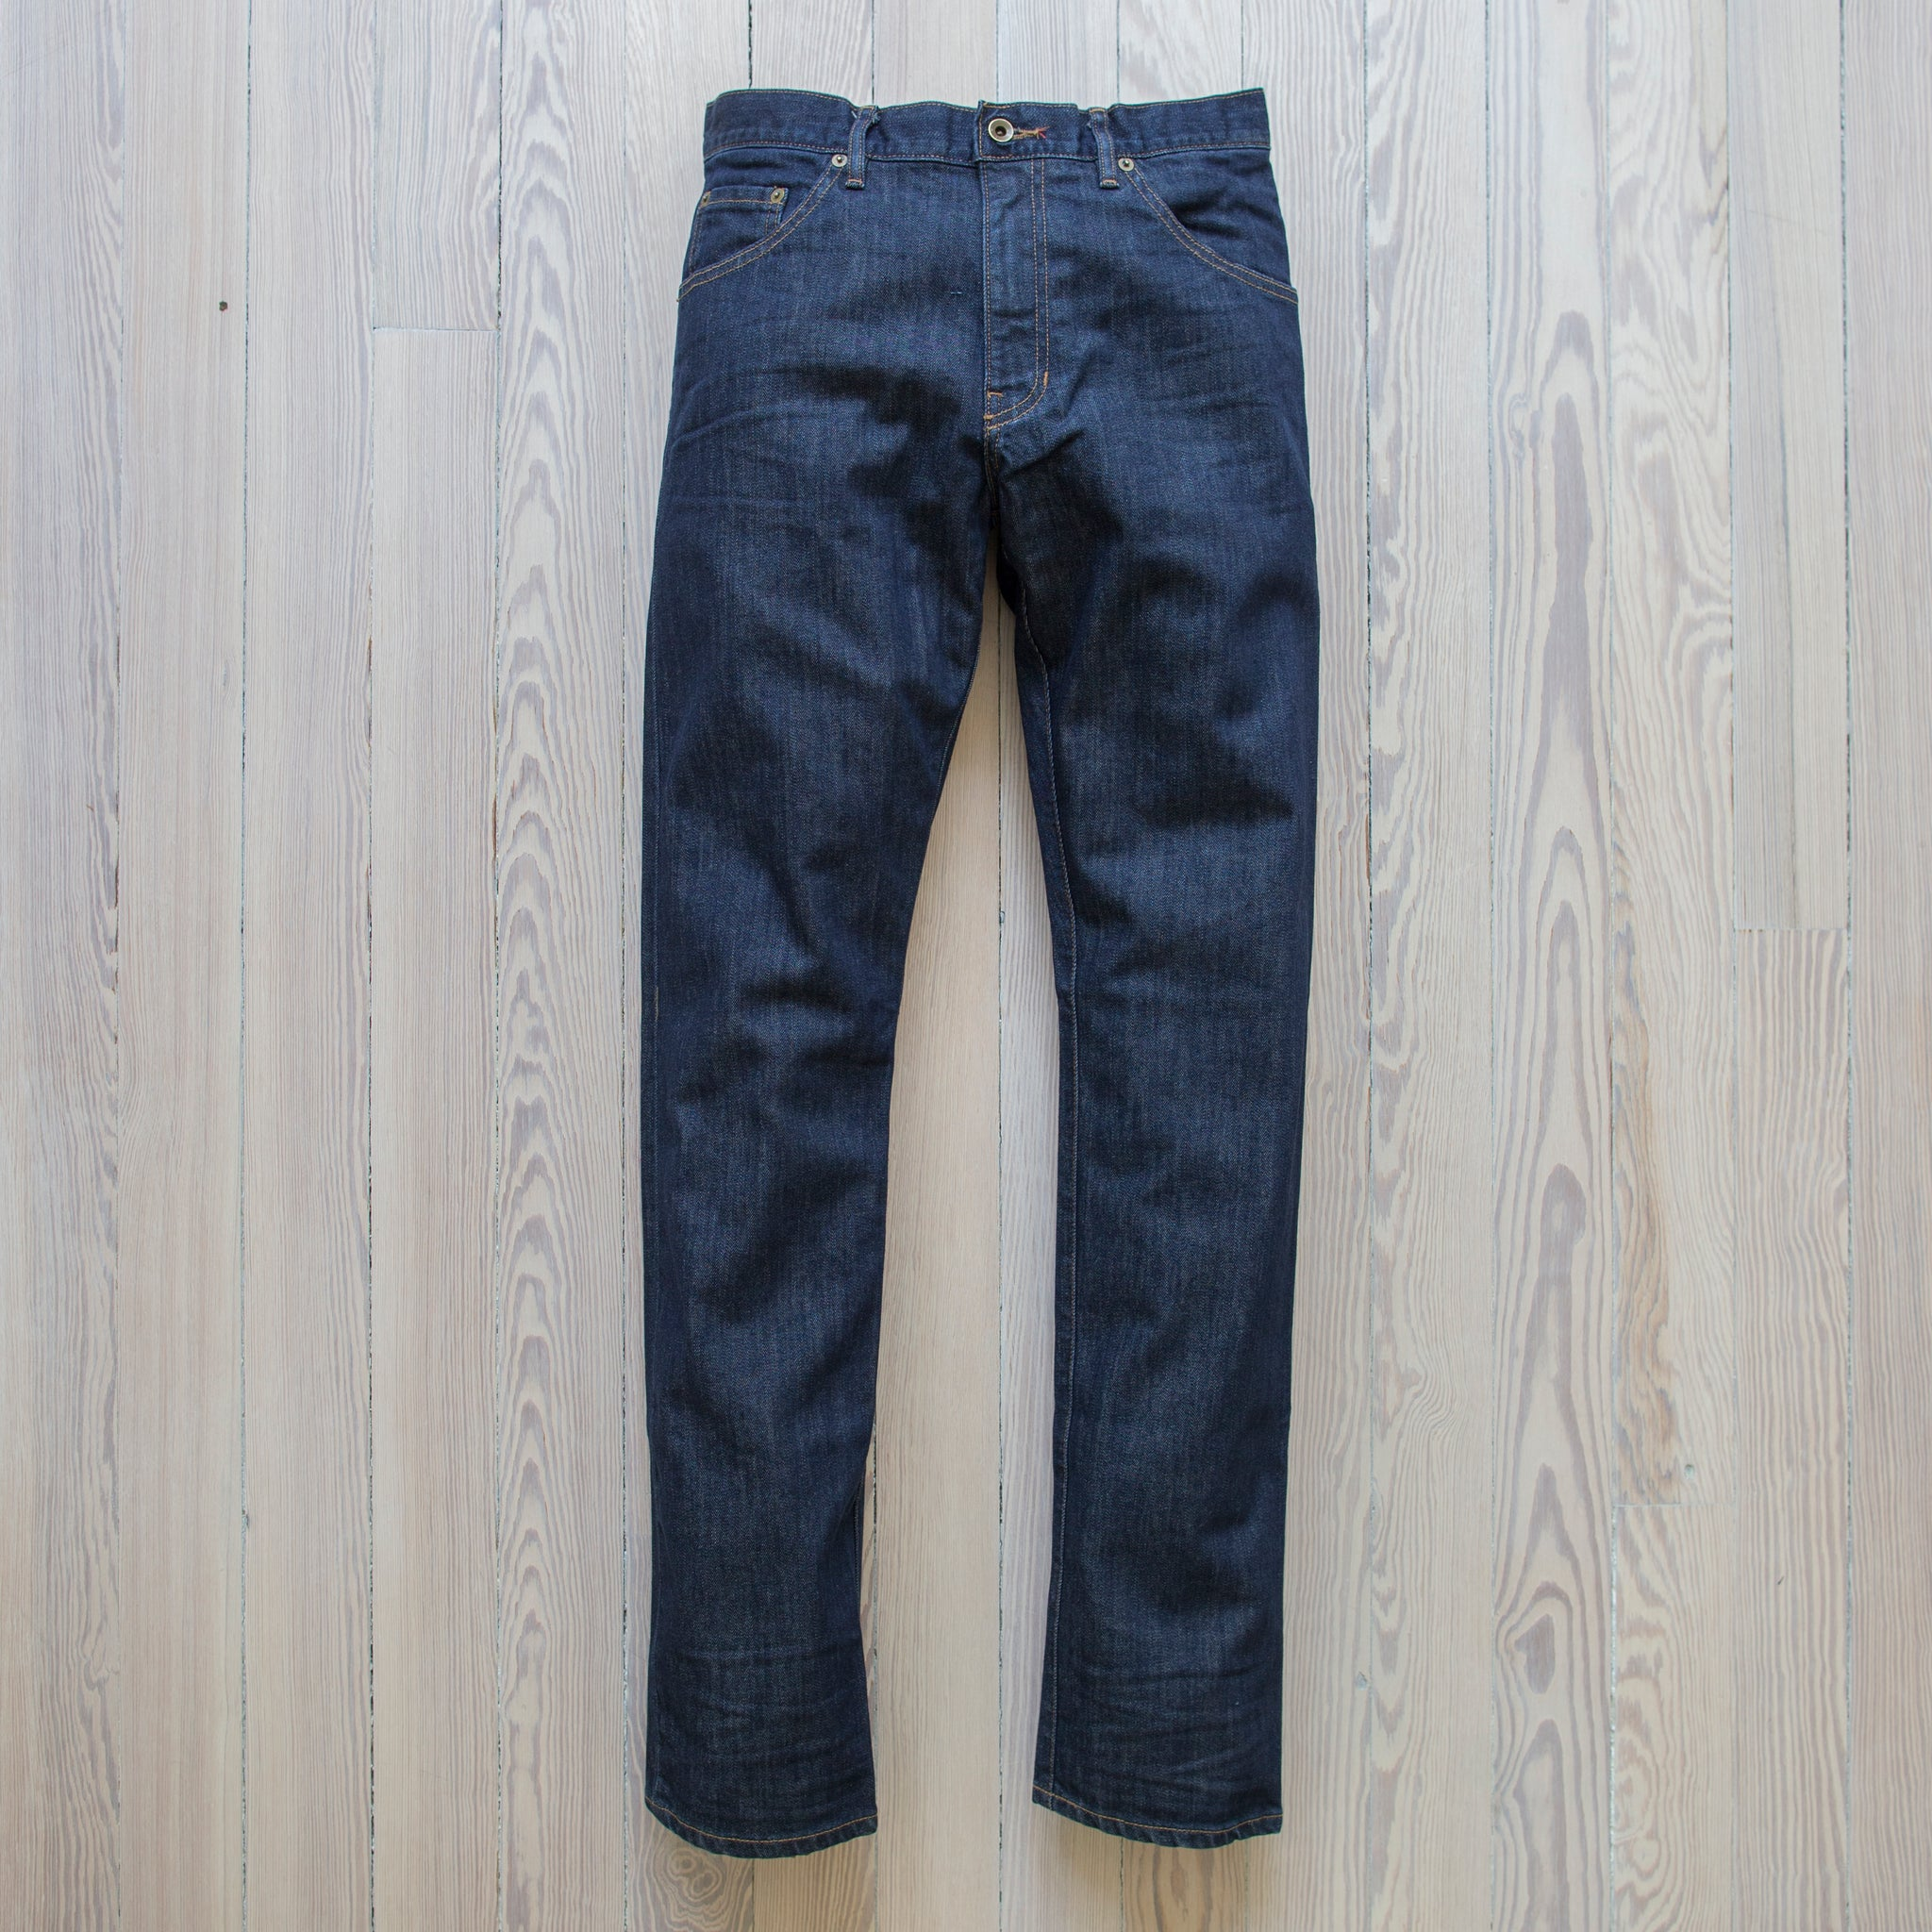 angle: resin rinse  Raleigh Denim Workshop Alexander work fit jeans with a dark wash, front view